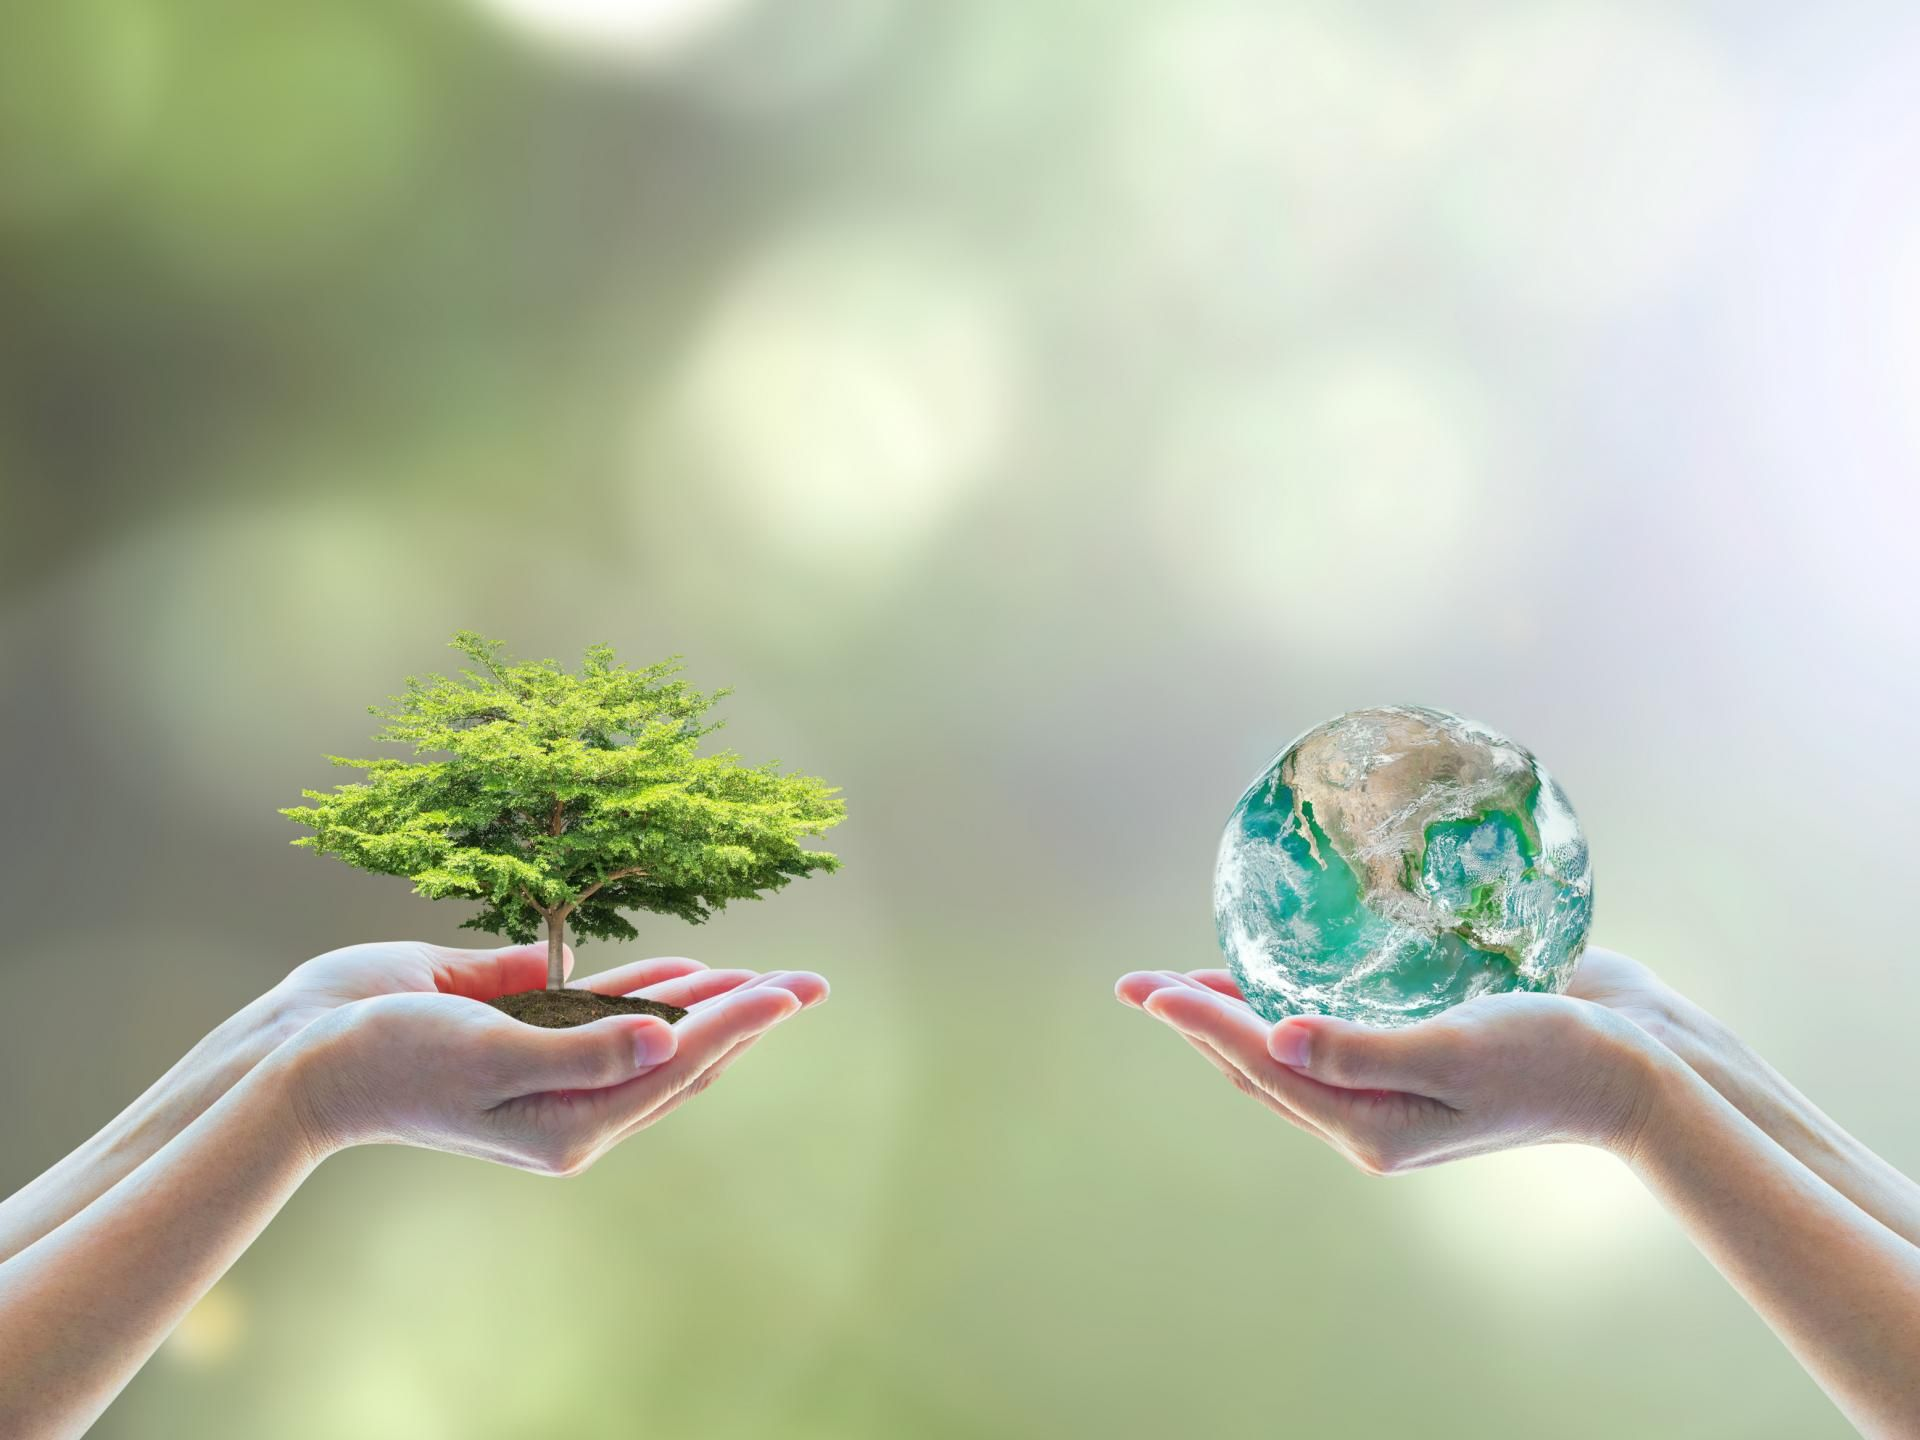 We do not inherit the earth from our ancestors, we borrow